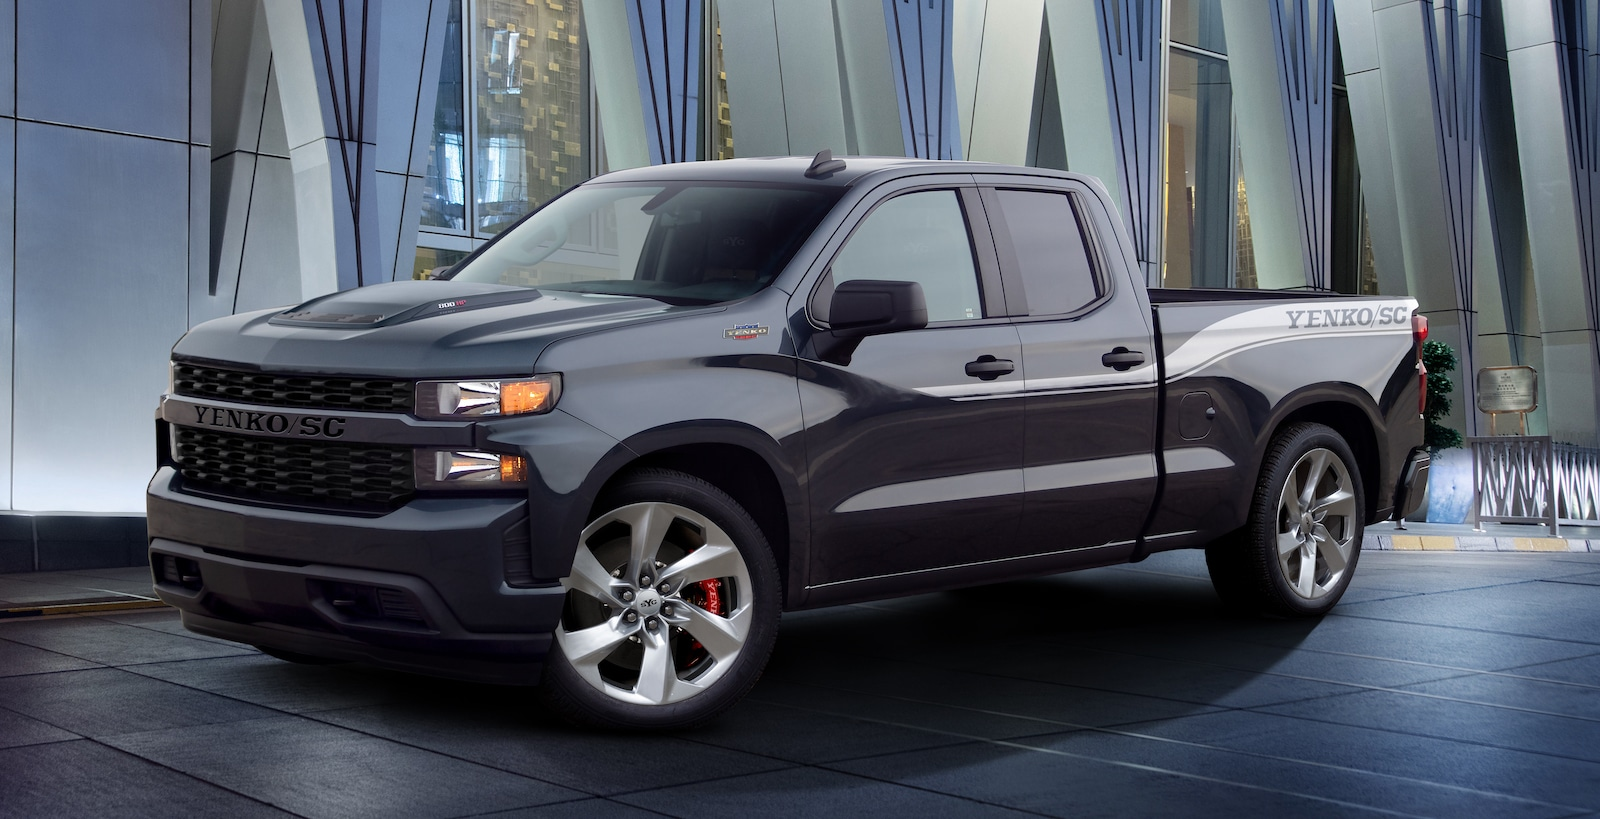 most promising cryptocurrency 2021 silverado